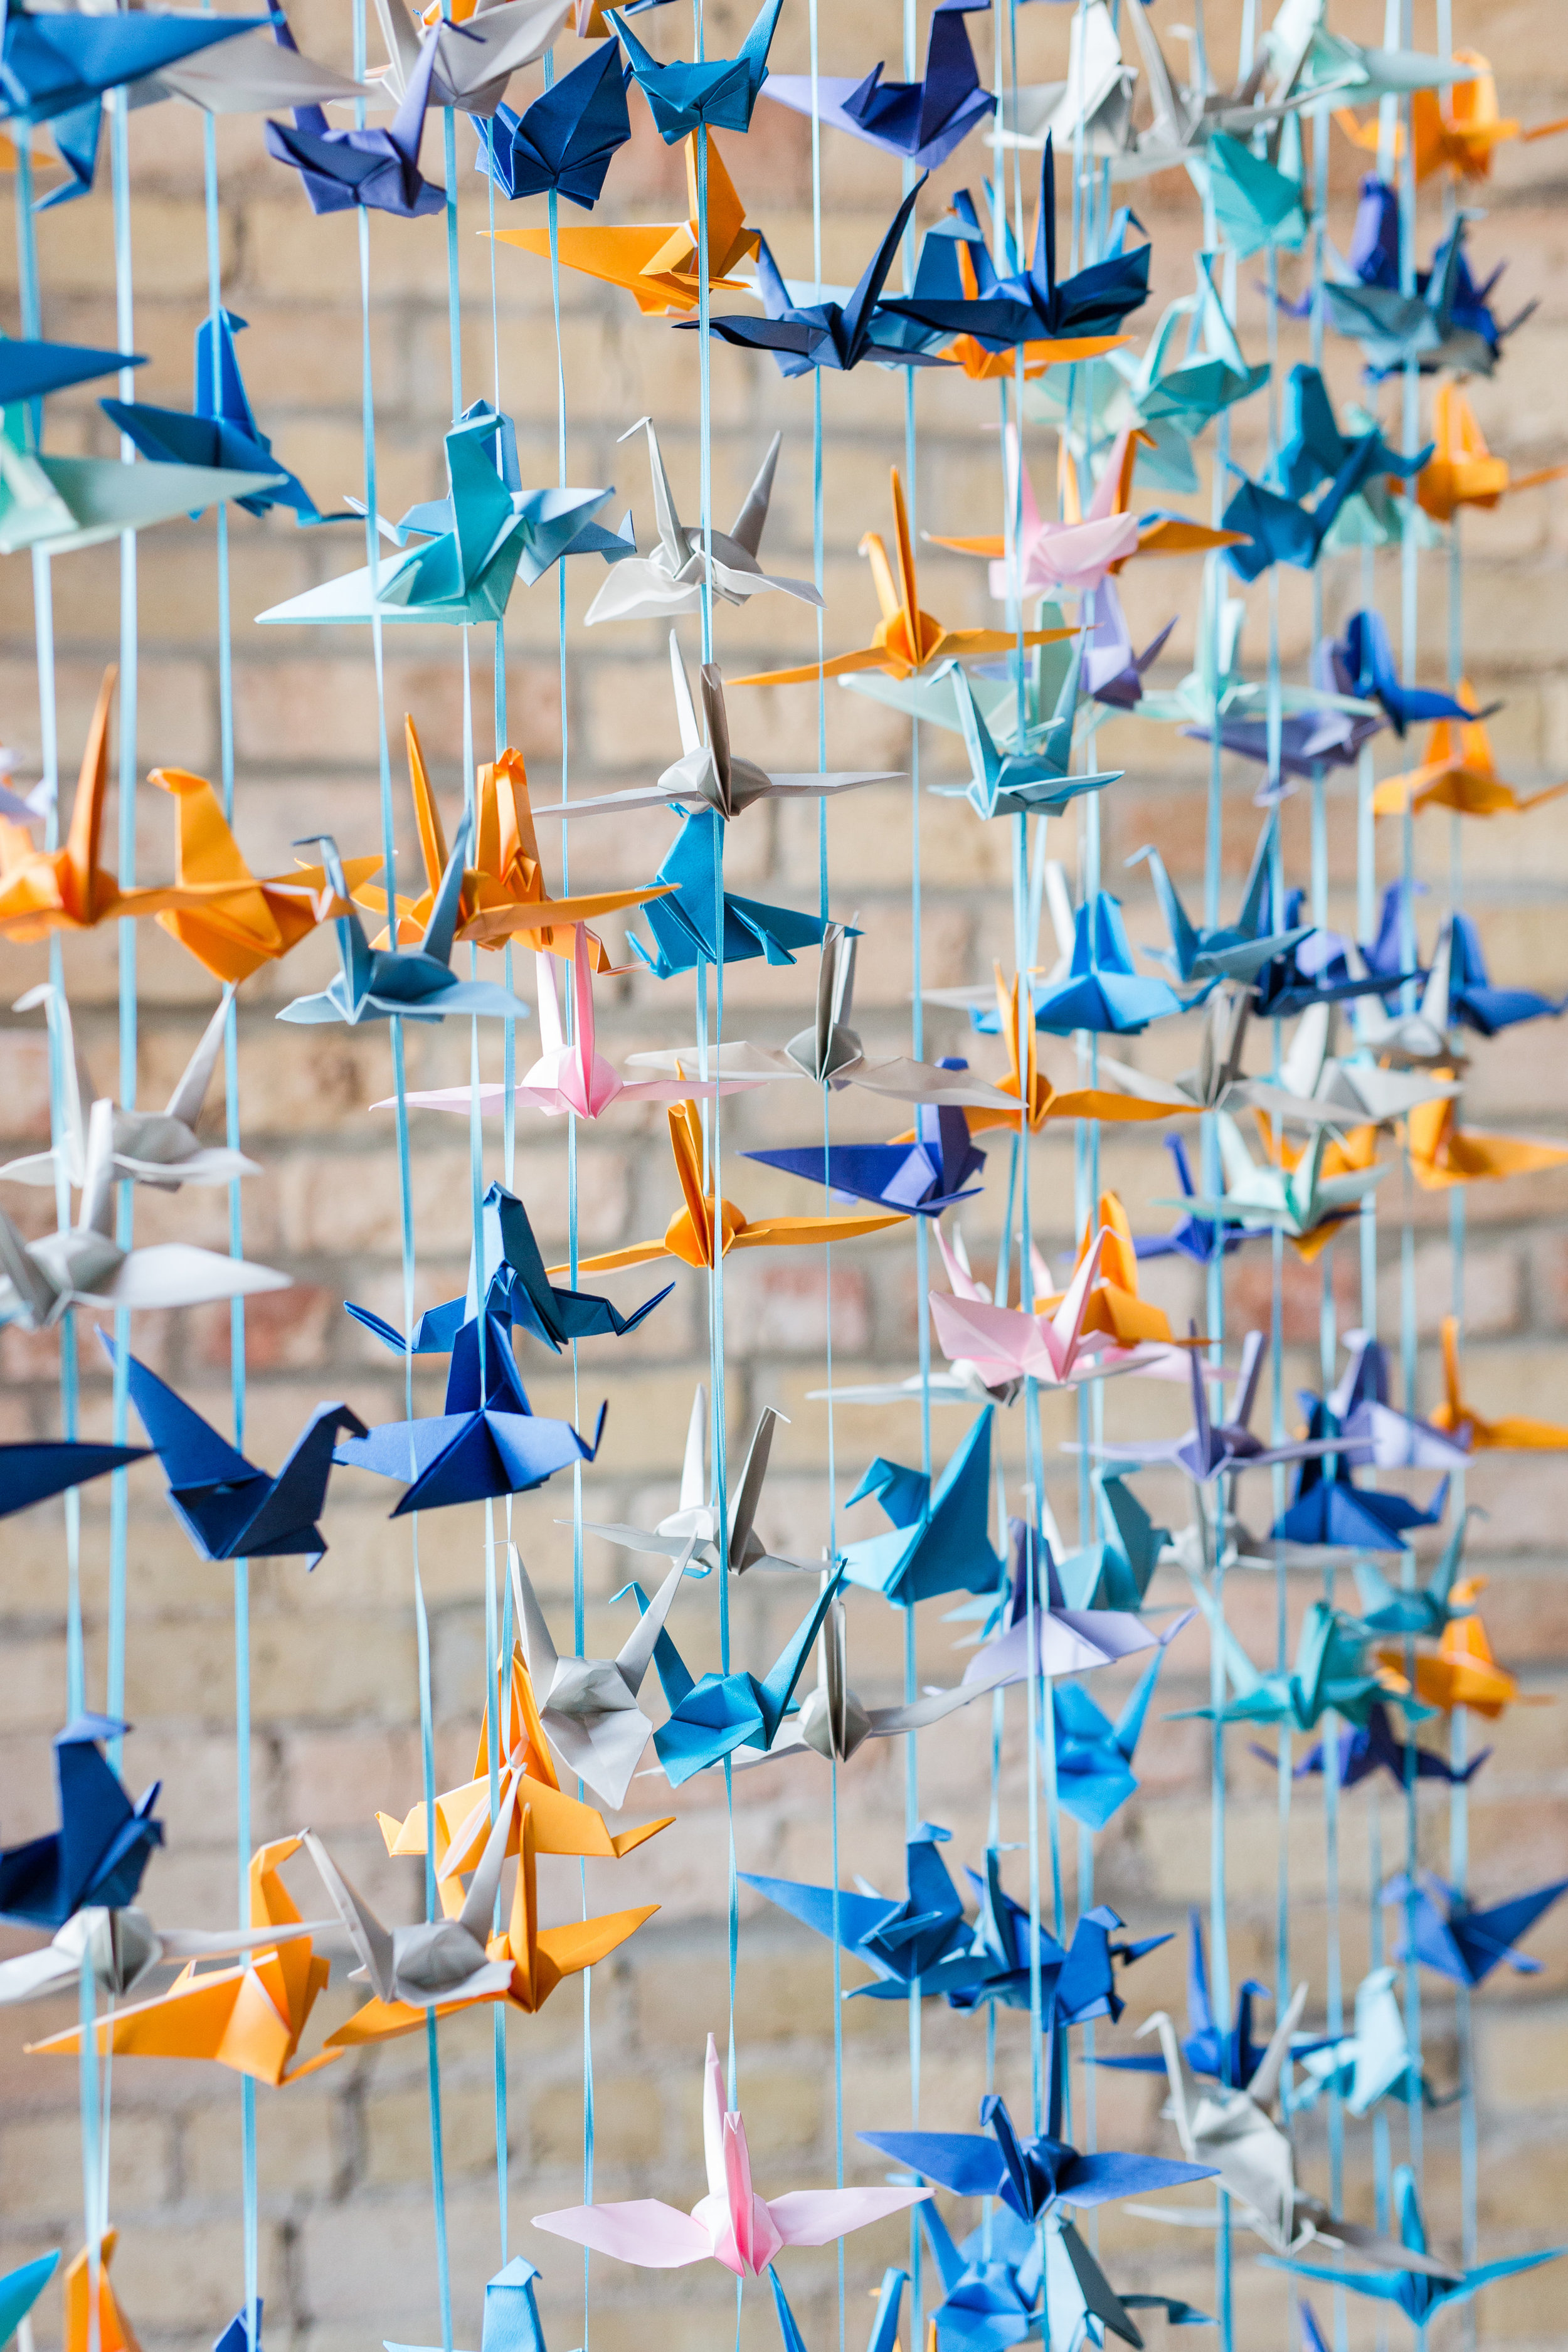 Jill + John :: Kristen Dyer :: Sixpence Events, paper cranes in blues, light blue, orange and pink